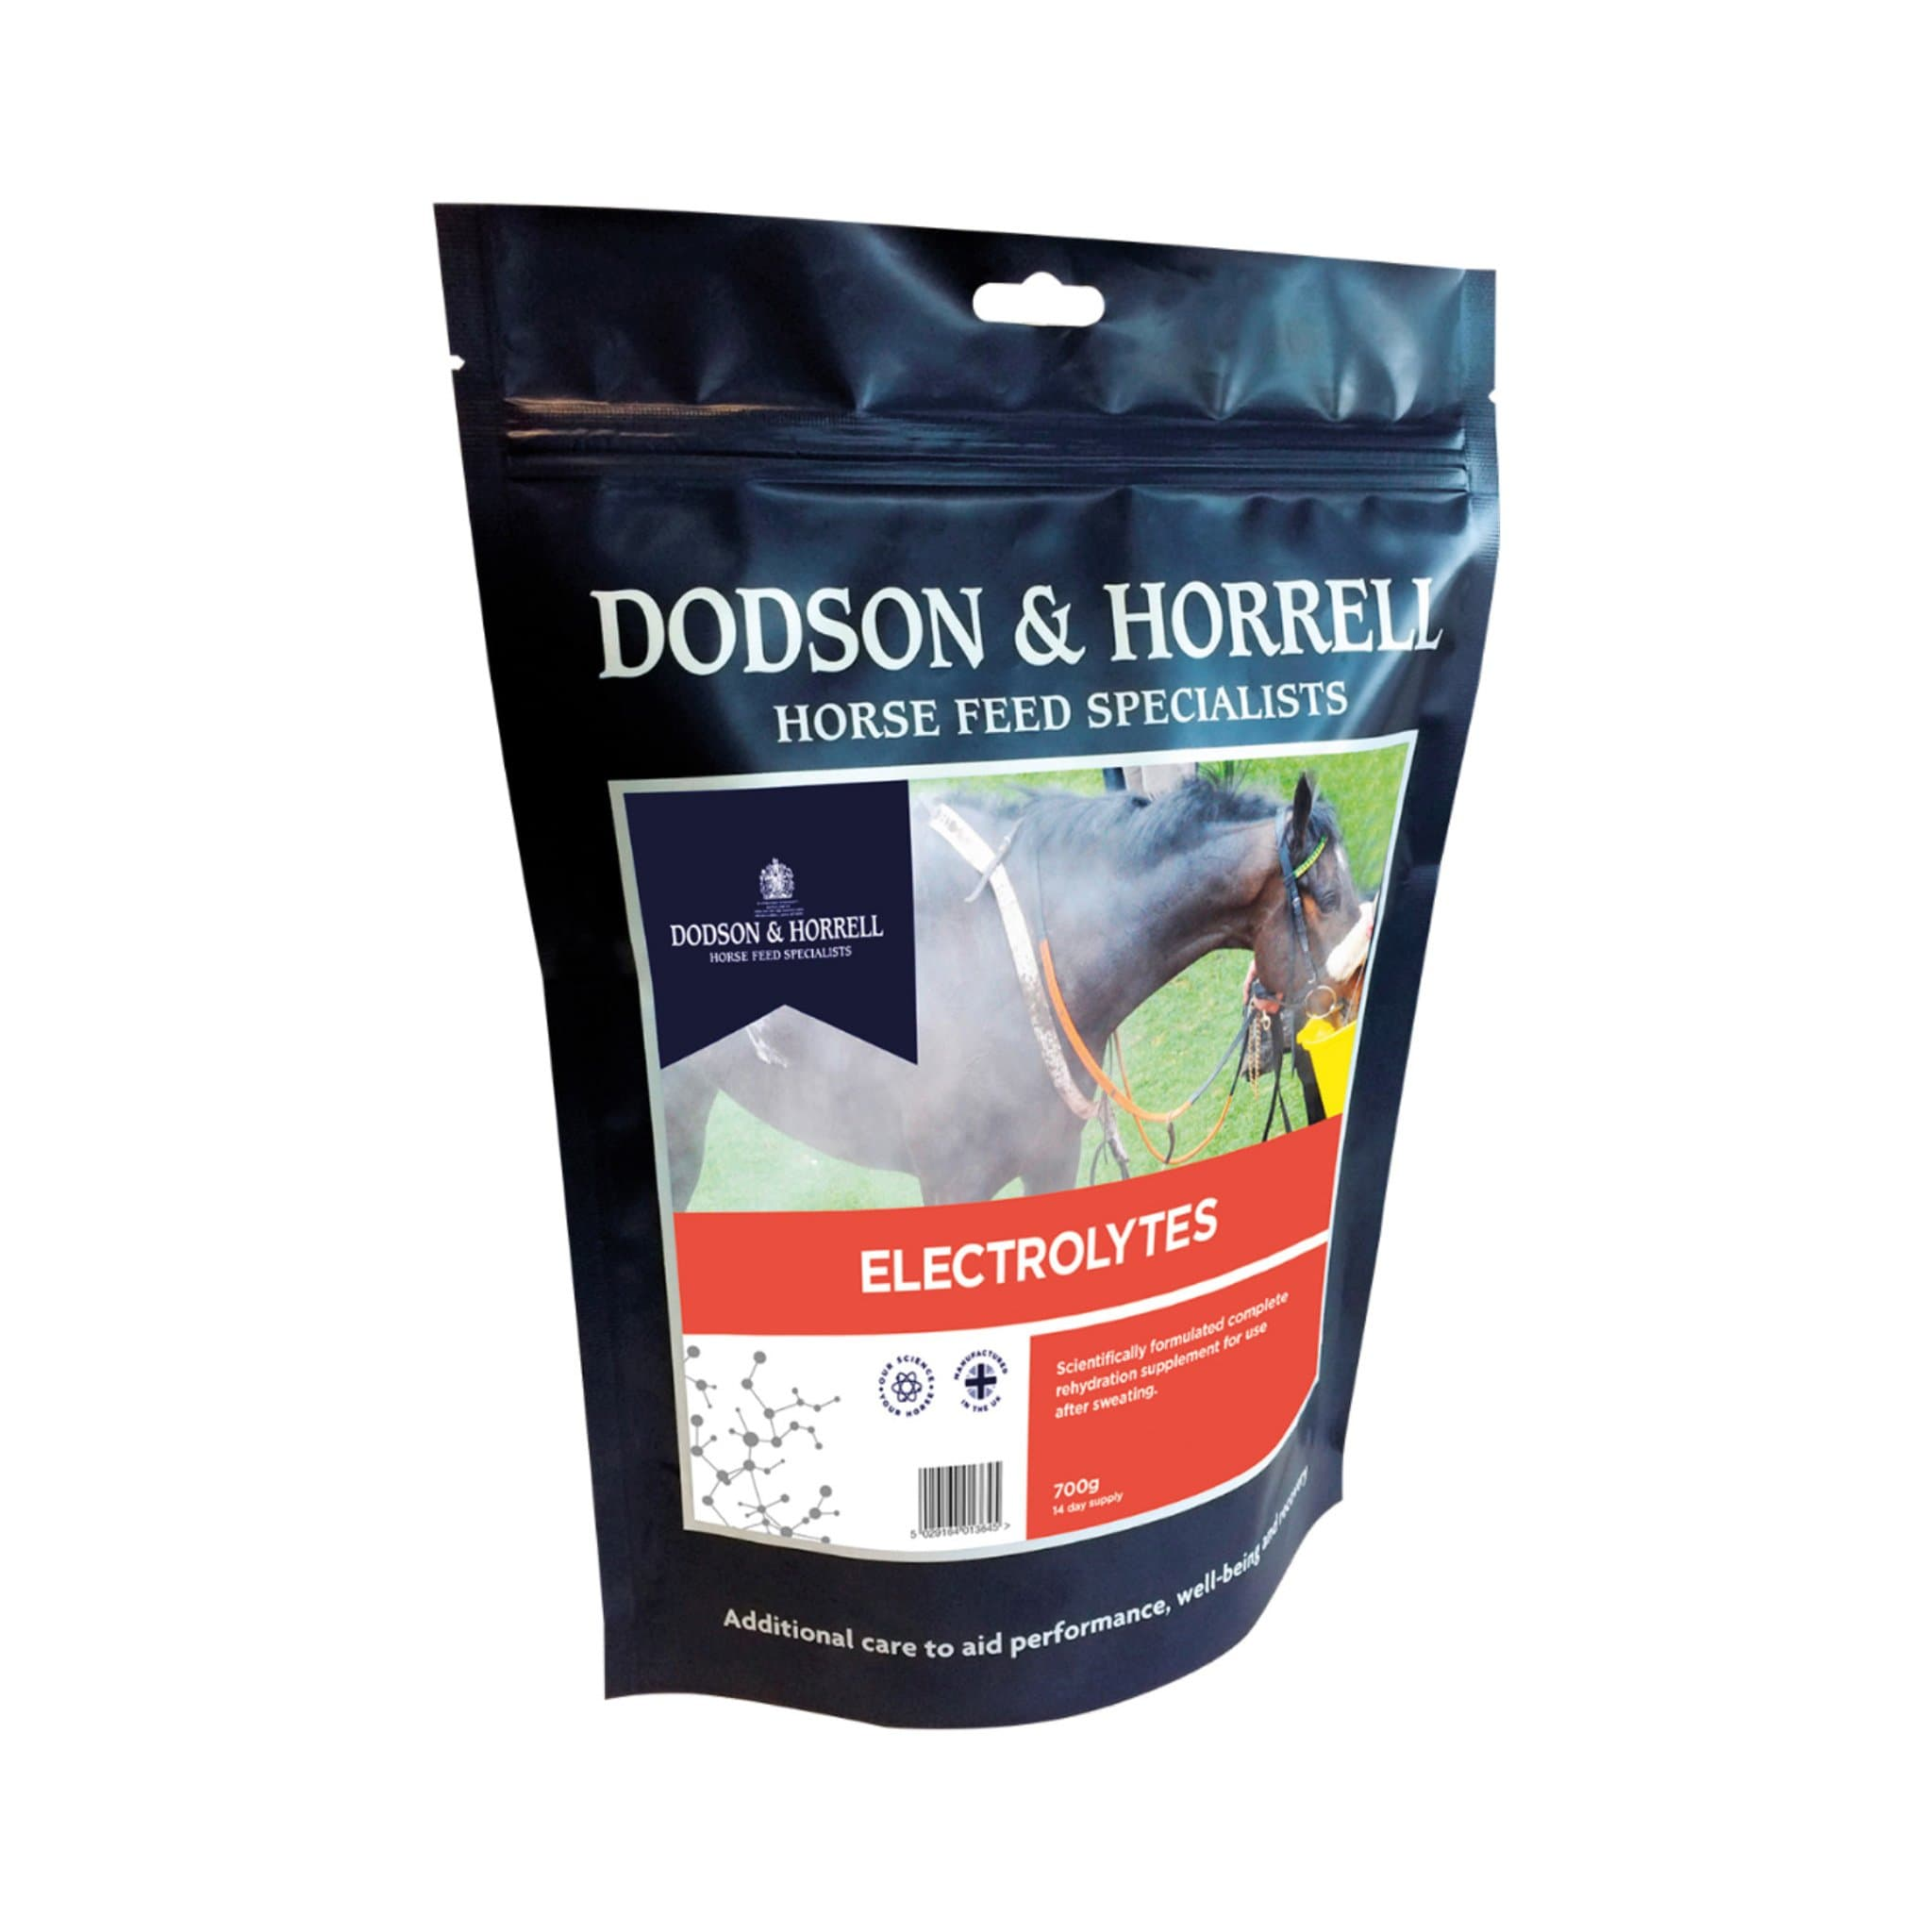 Dodson and Horrell Electrolytes 700G DHL1085